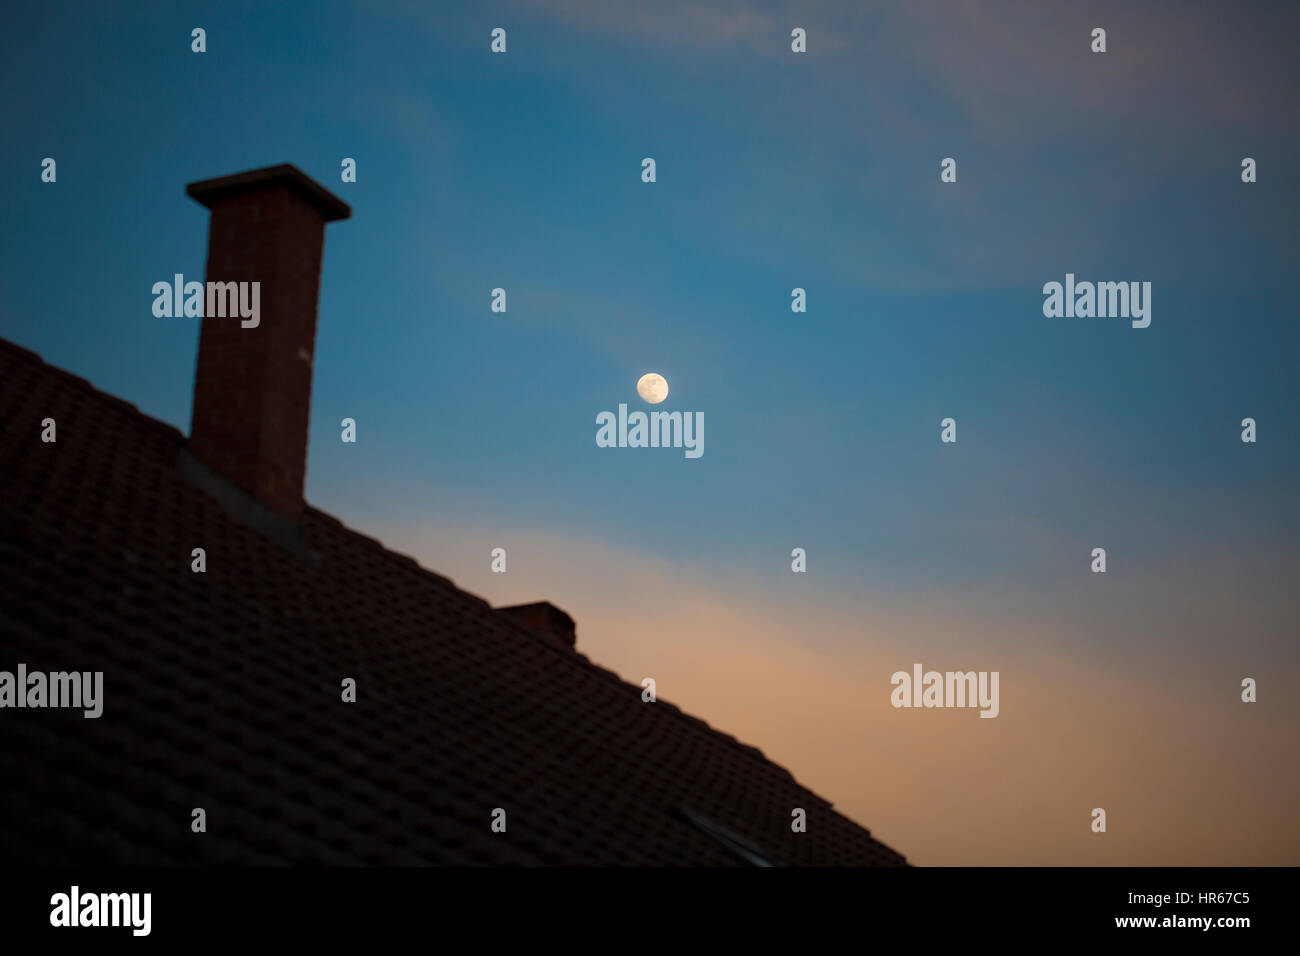 Moon over house - Stock Image